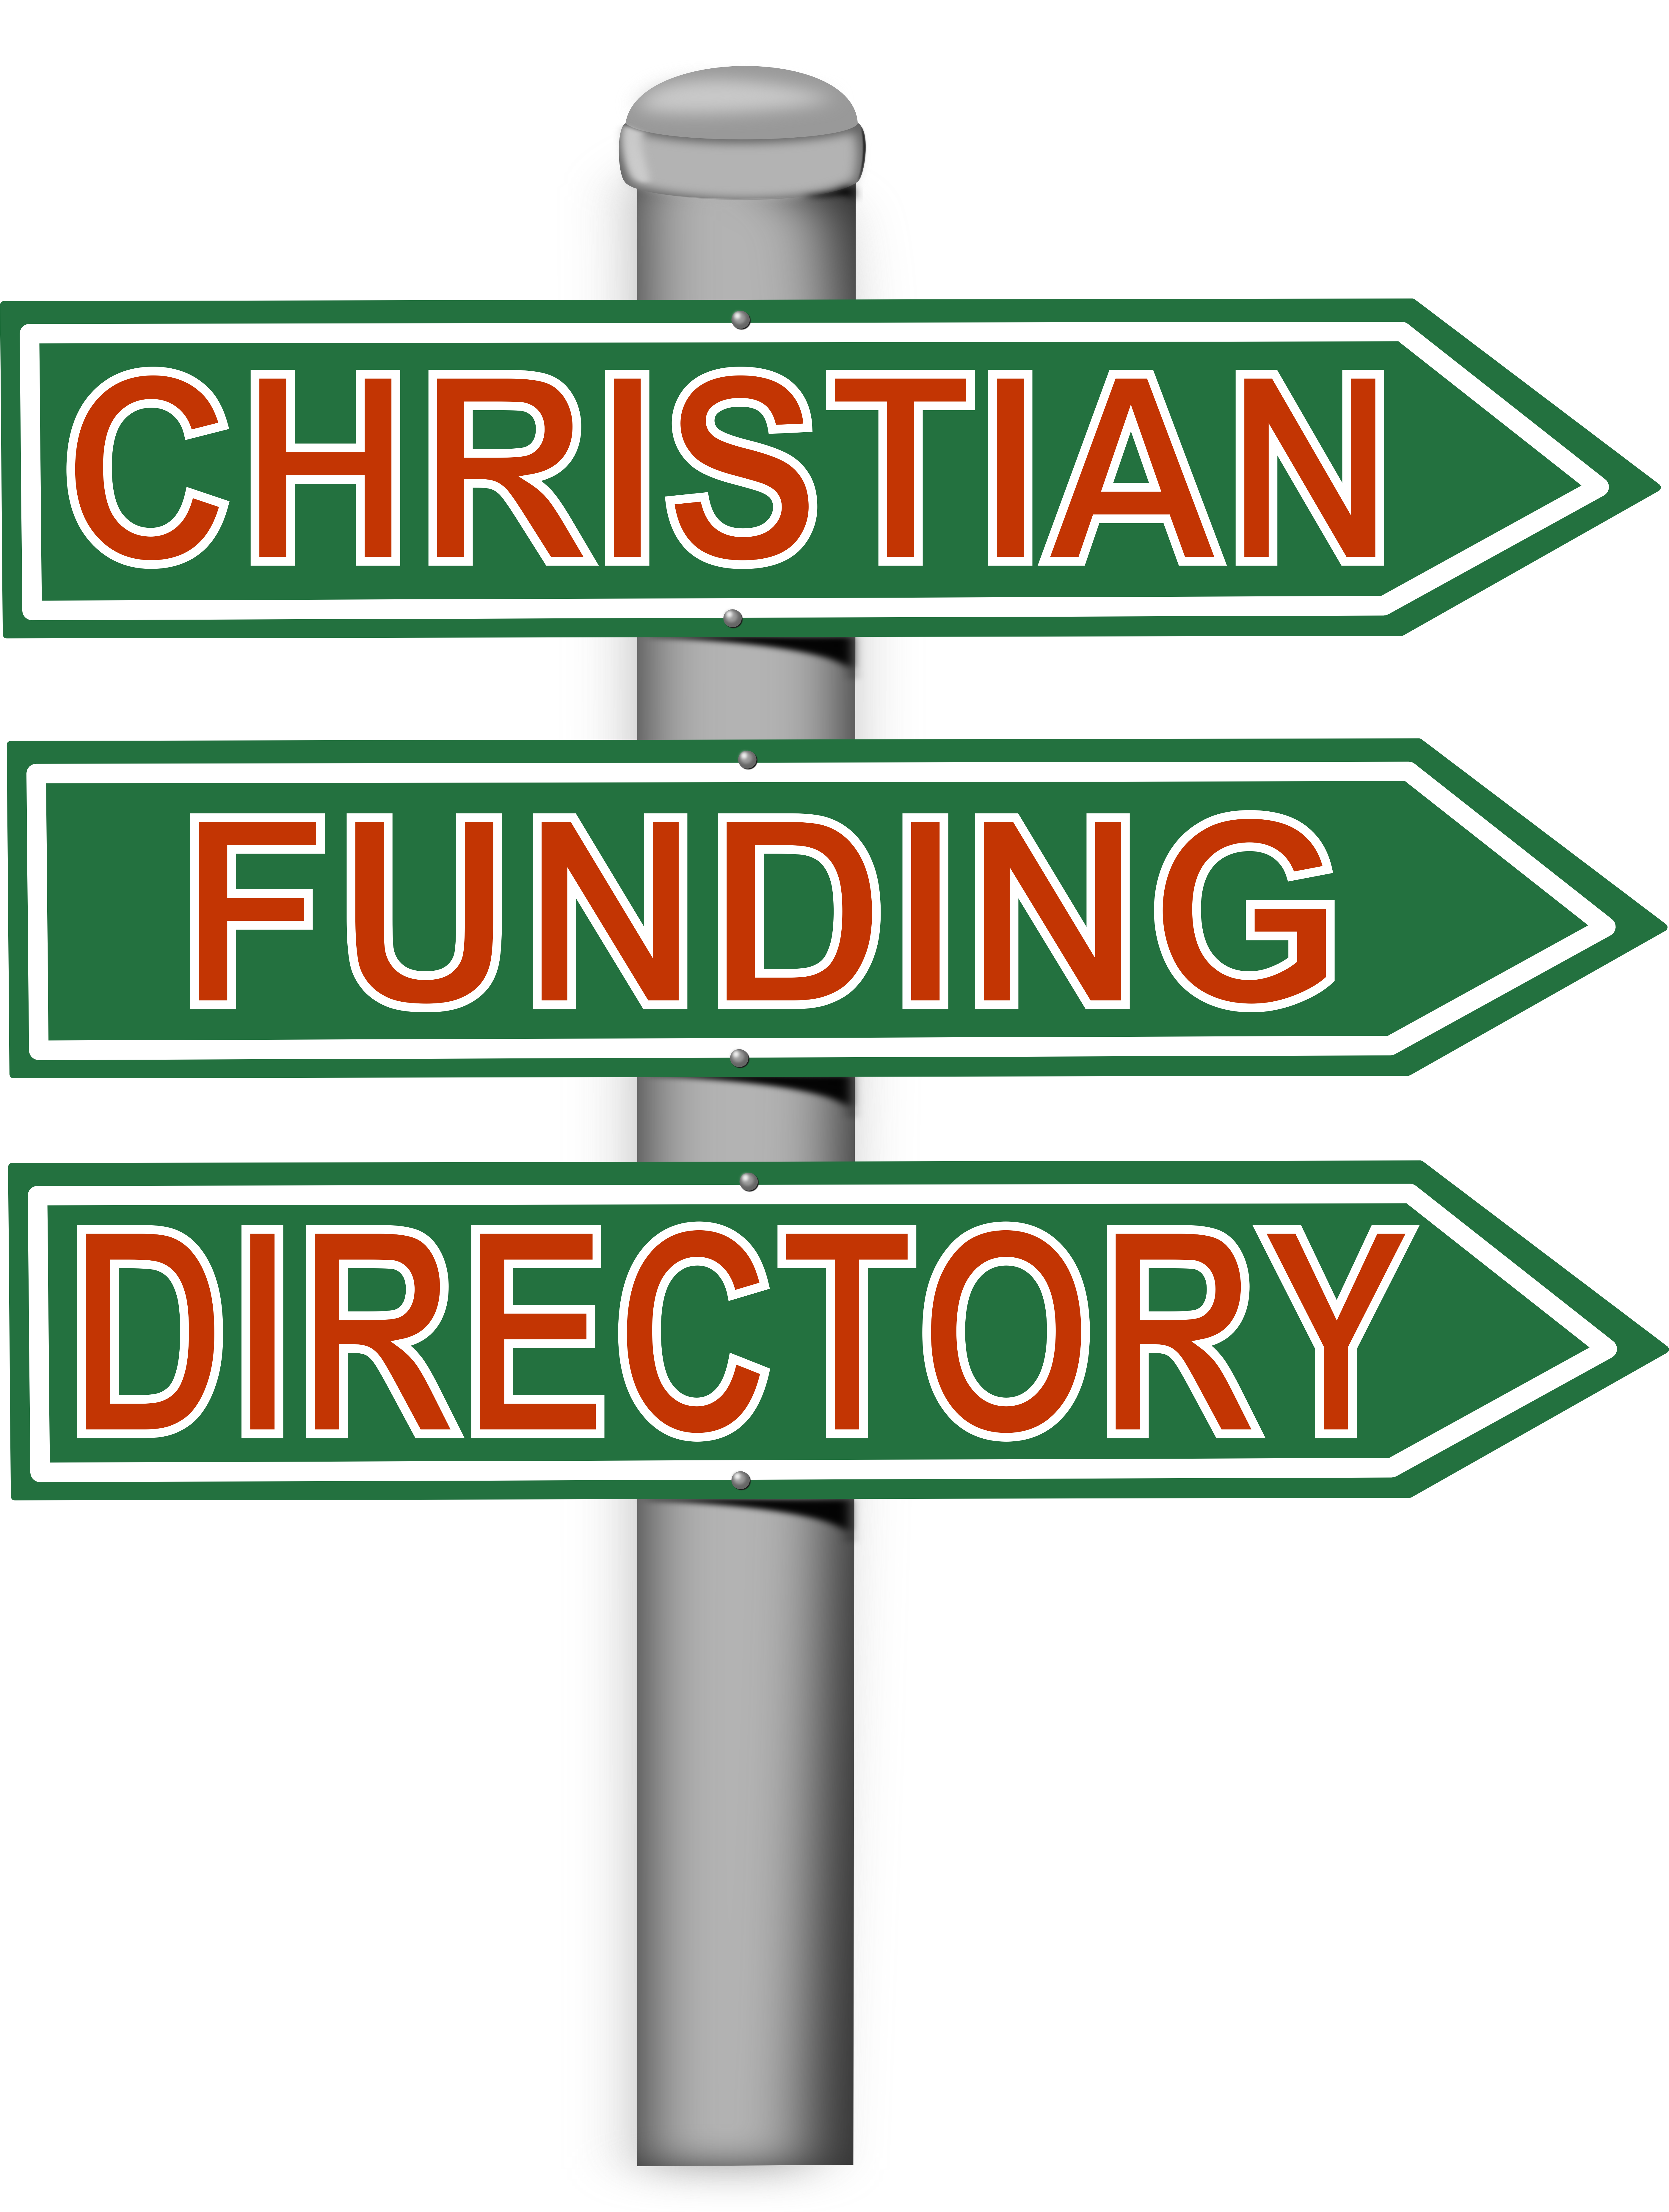 Christian Funding Directory